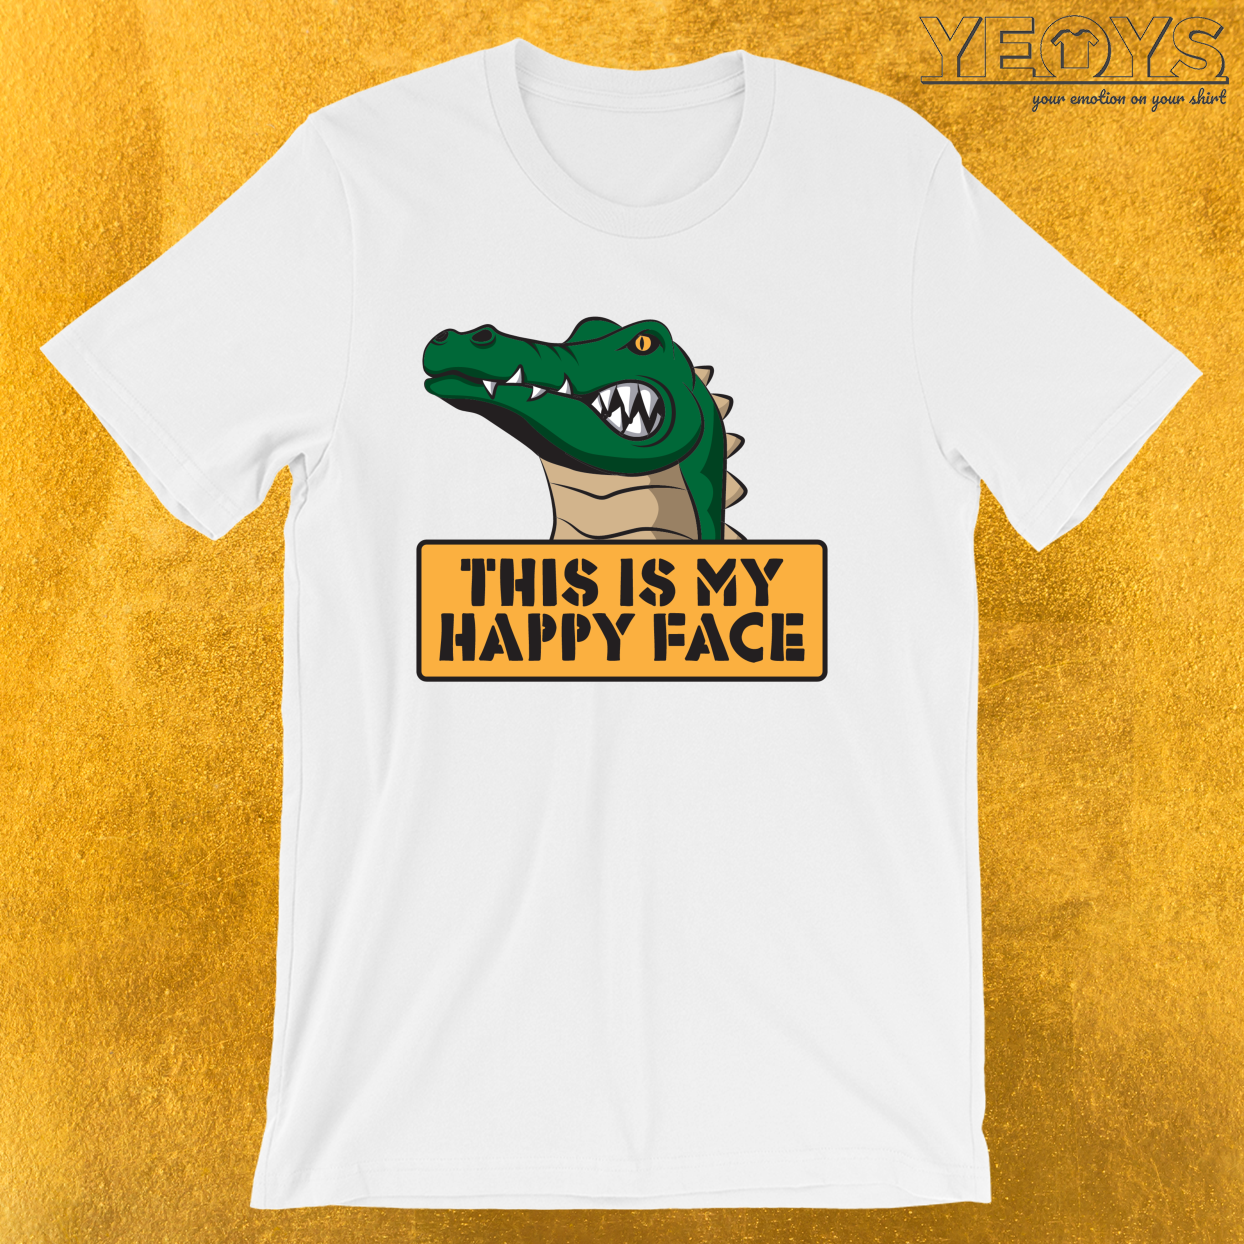 This Is My Happy Face – Reptile Party Alligator Tee